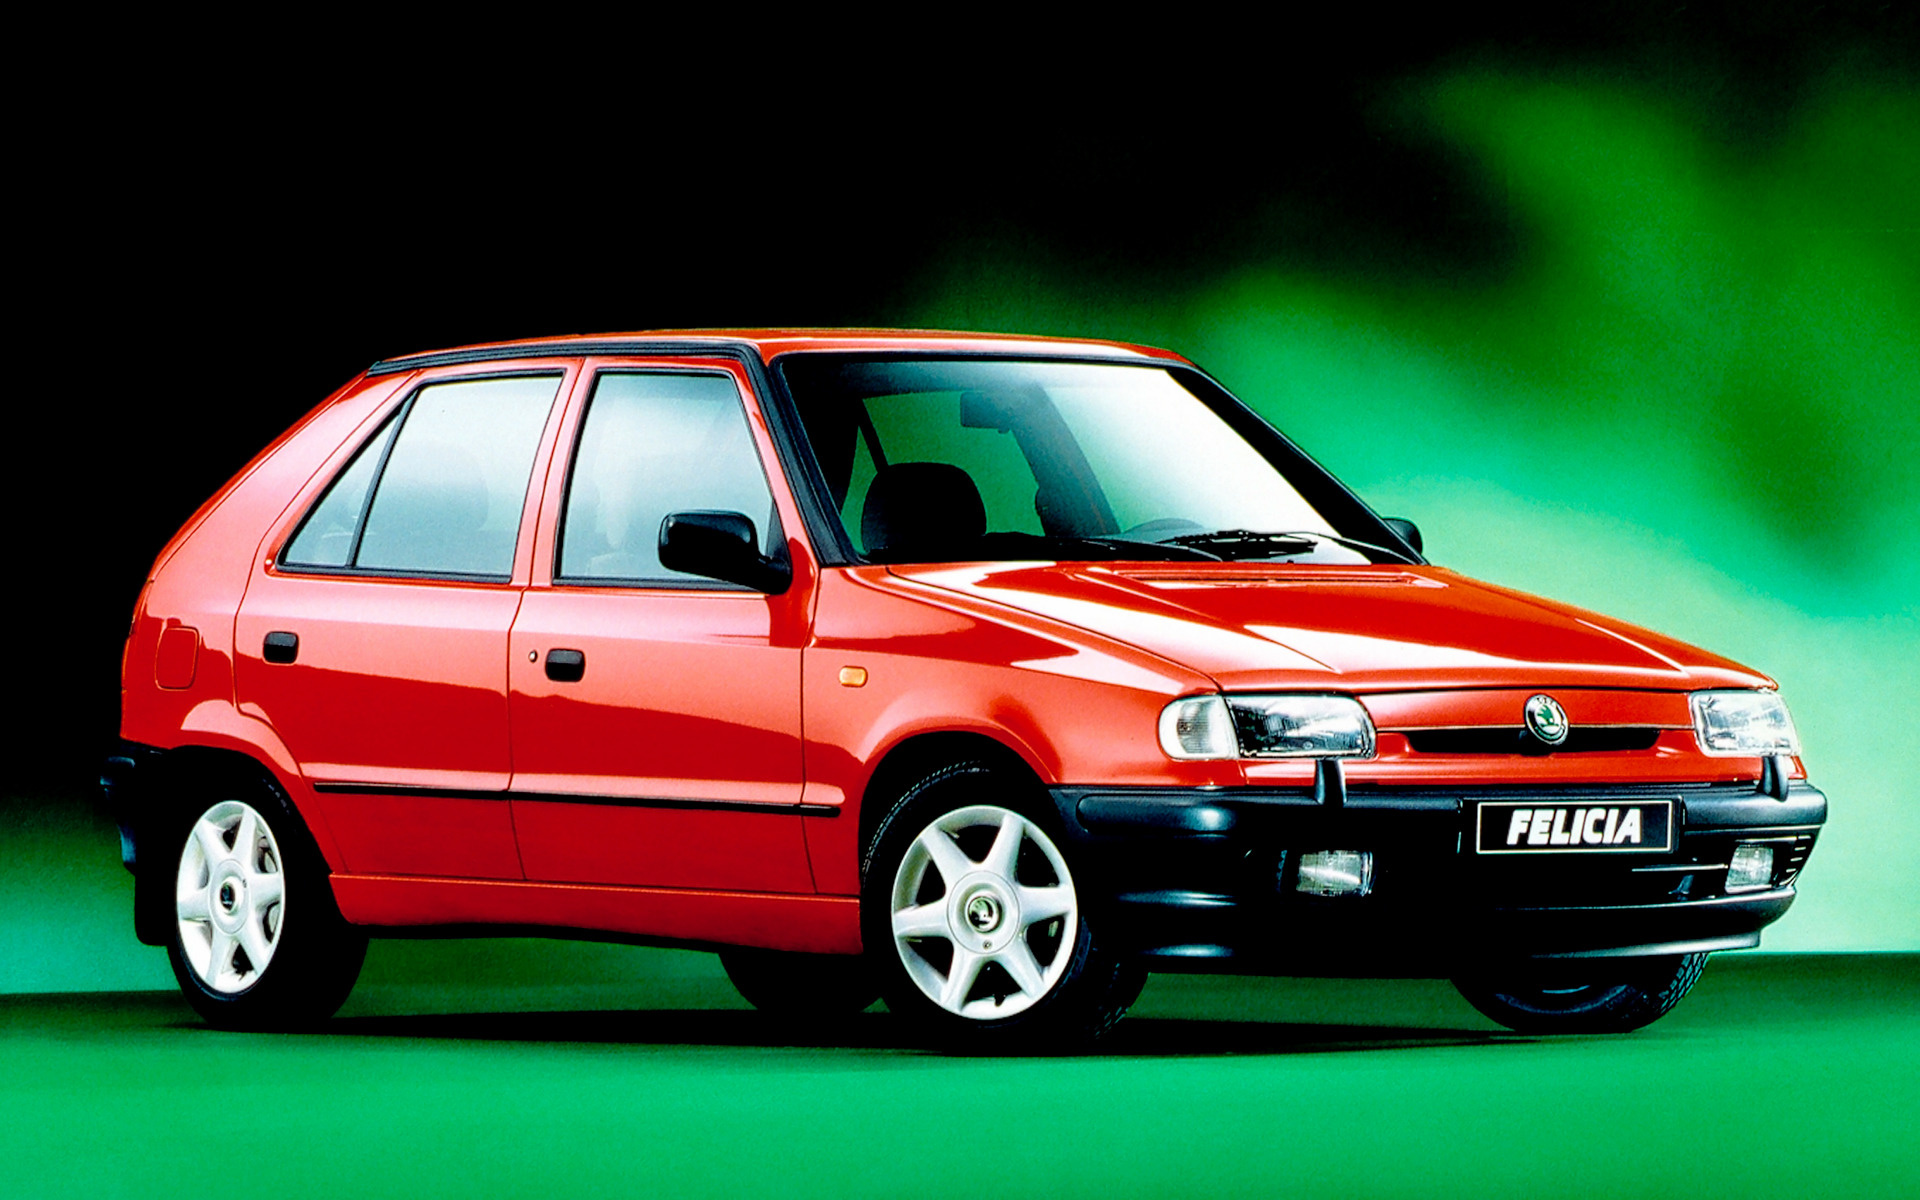 1994 Skoda Felicia - Wallpapers and HD Images | Car Pixel